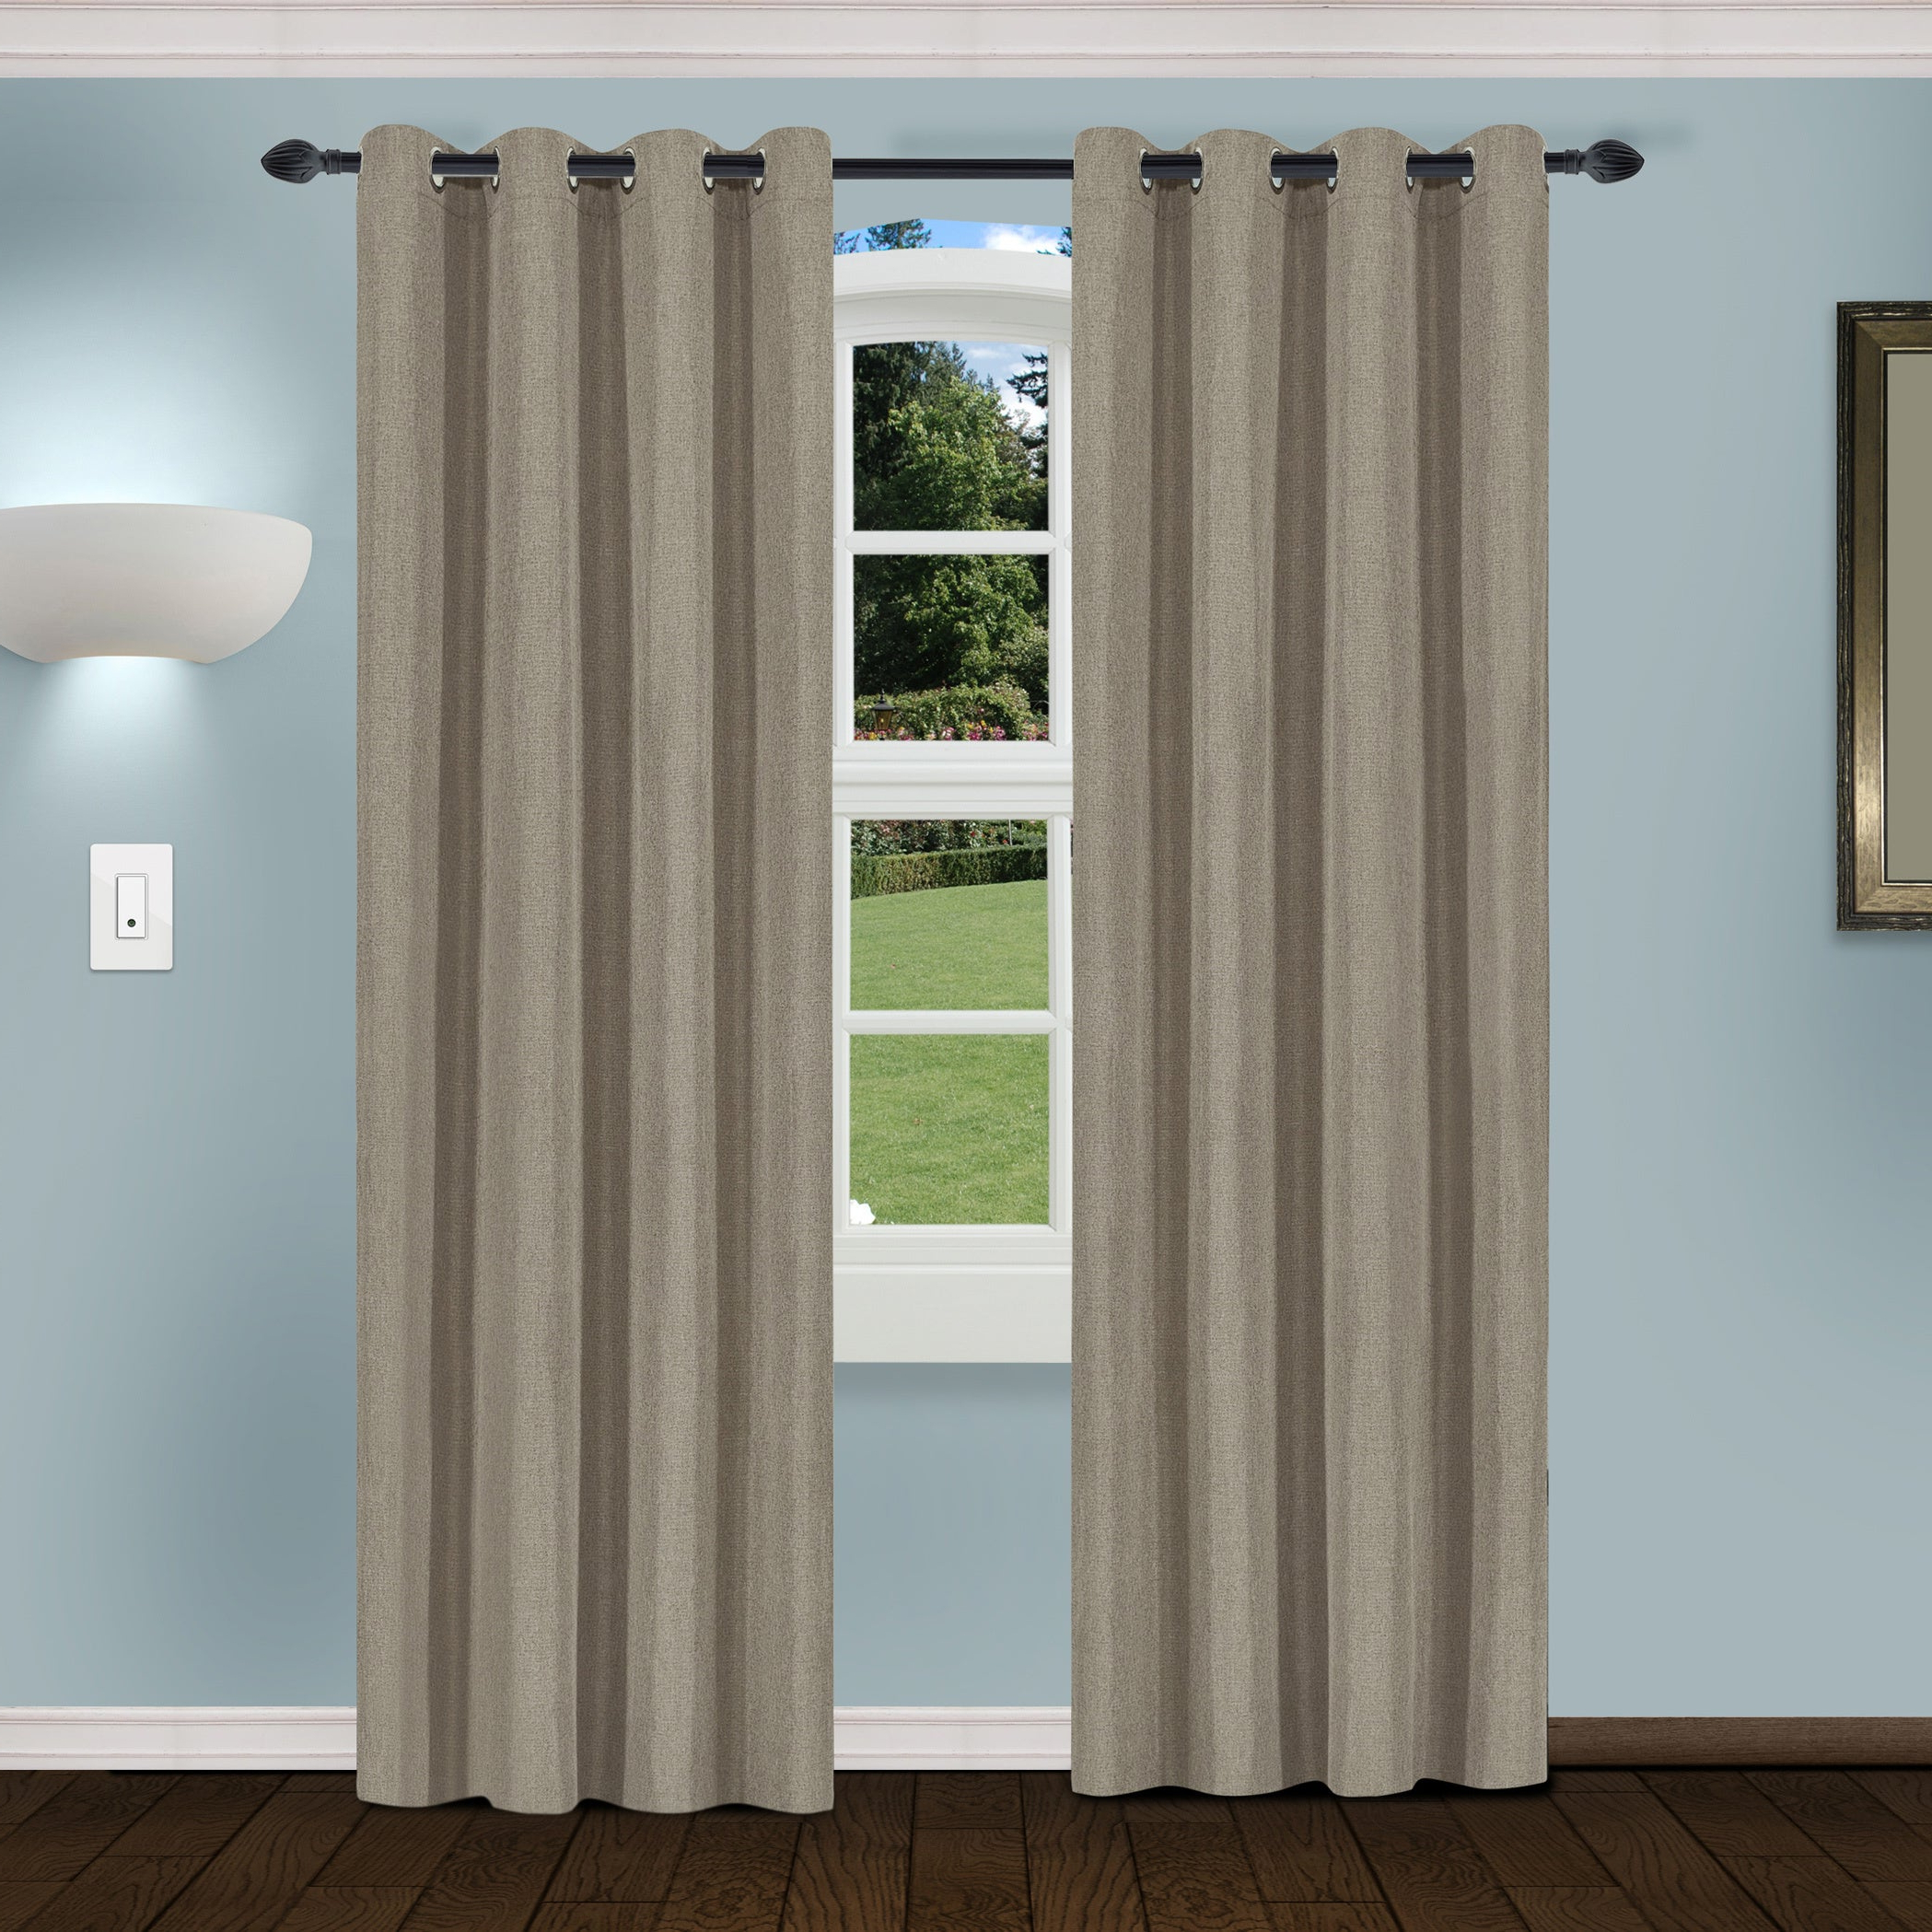 Most Popular Insulated Thermal Blackout Curtain Panel Pairs Within Superior Linen Insulated Thermal Blackout Grommet Curtain Panel Pair (Gallery 10 of 20)